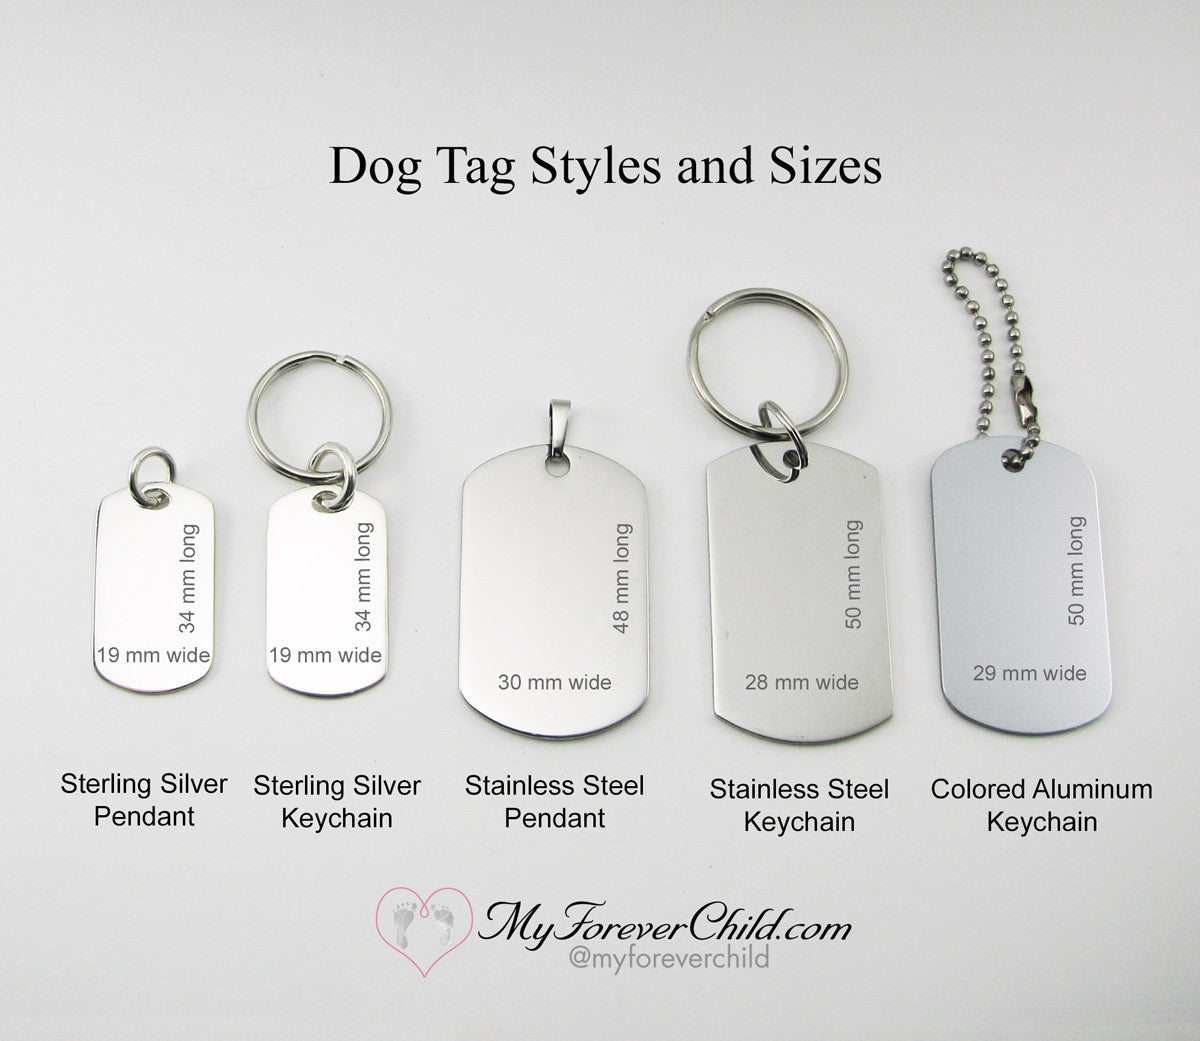 Our 2 Precious Babies- Two Butterflies stainless steel dog tag pendant memorial keychain